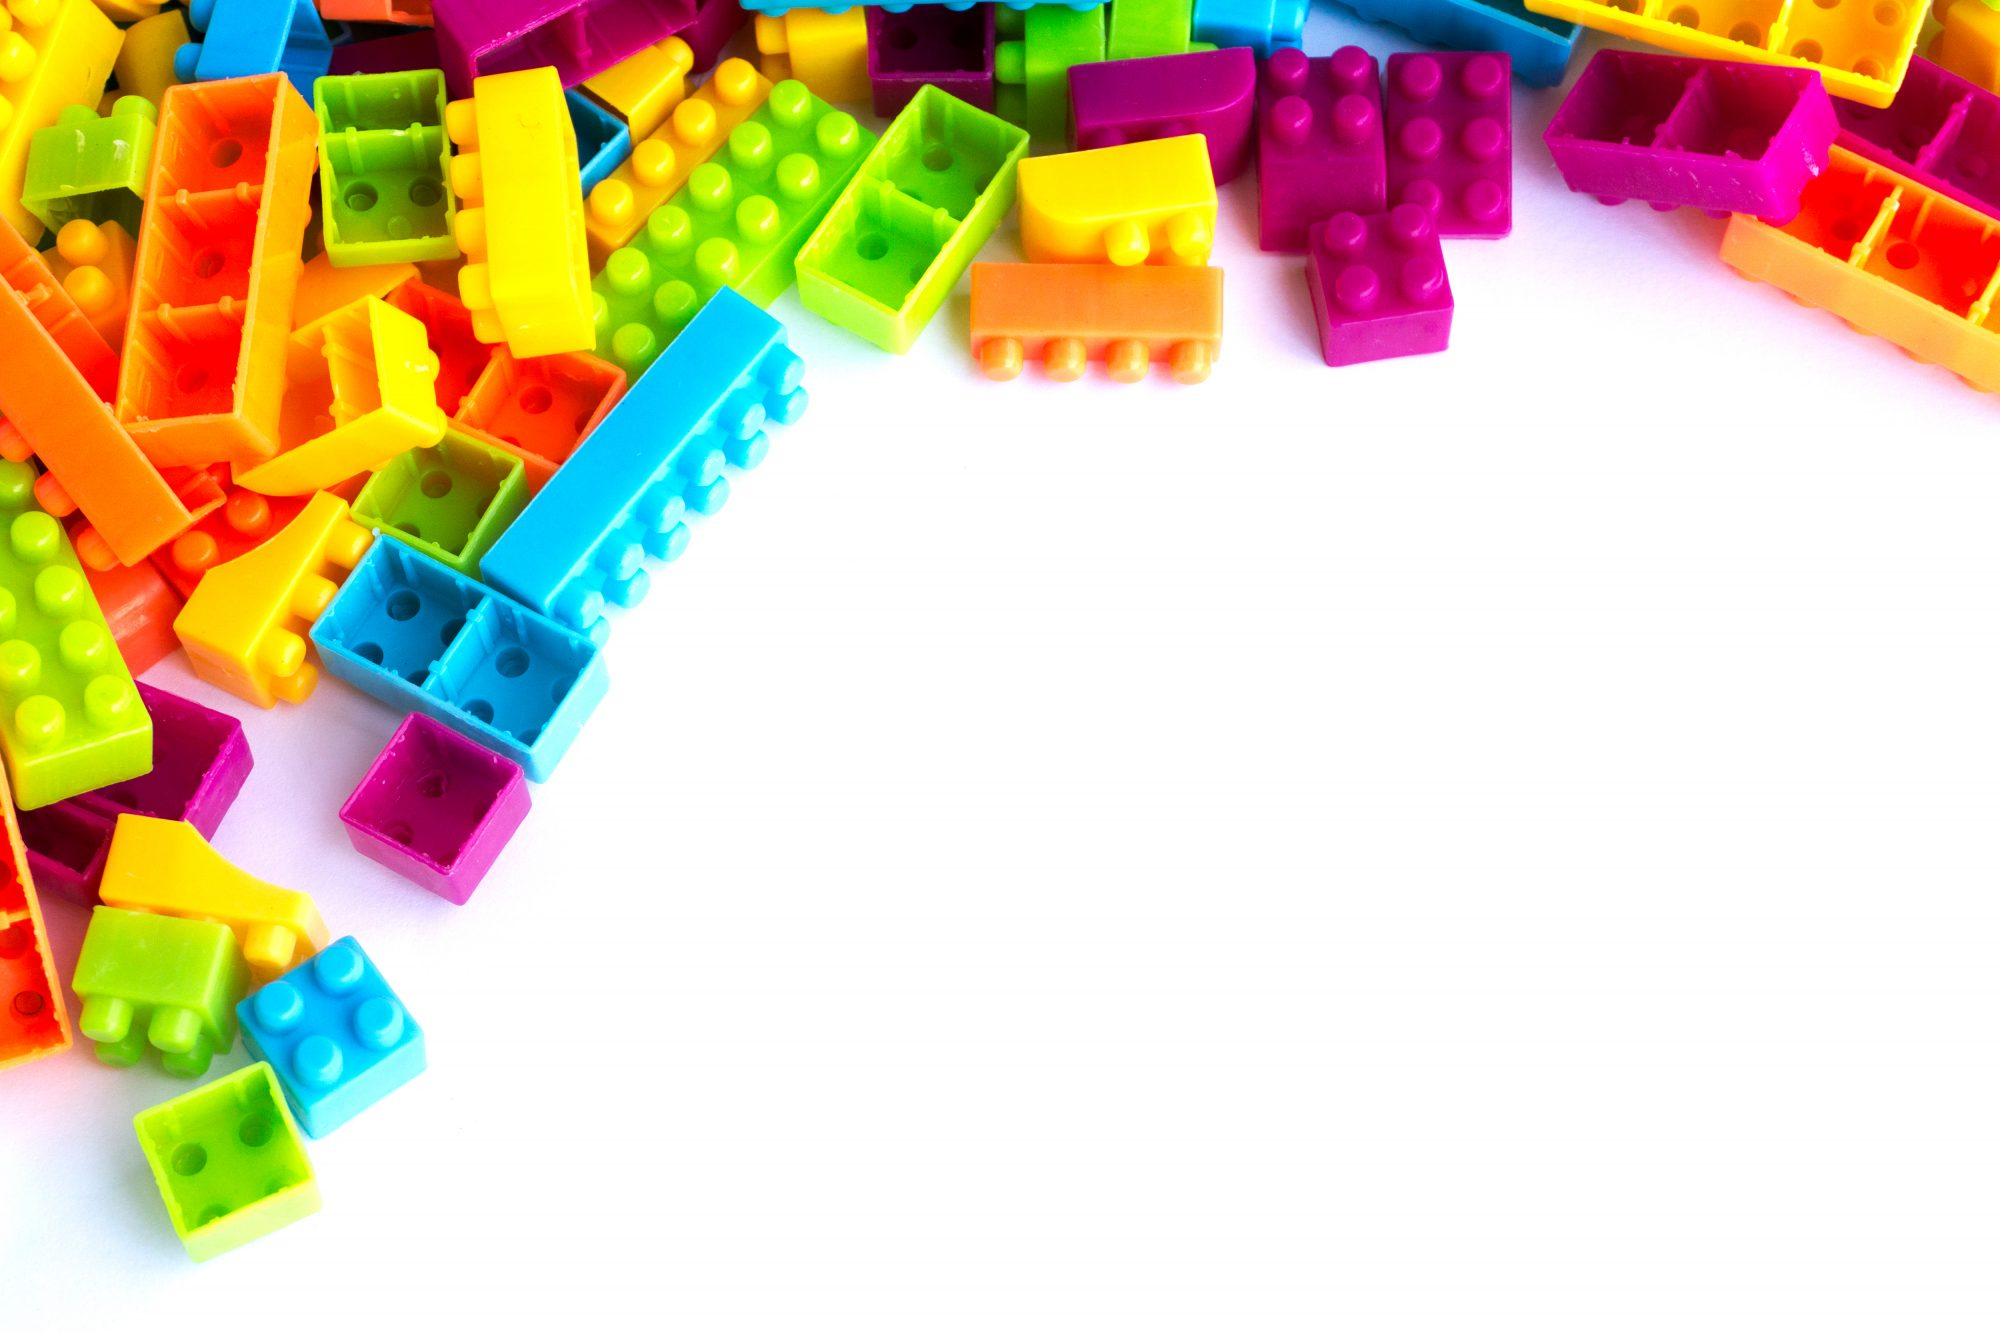 Colorful Plastic Building Blocks